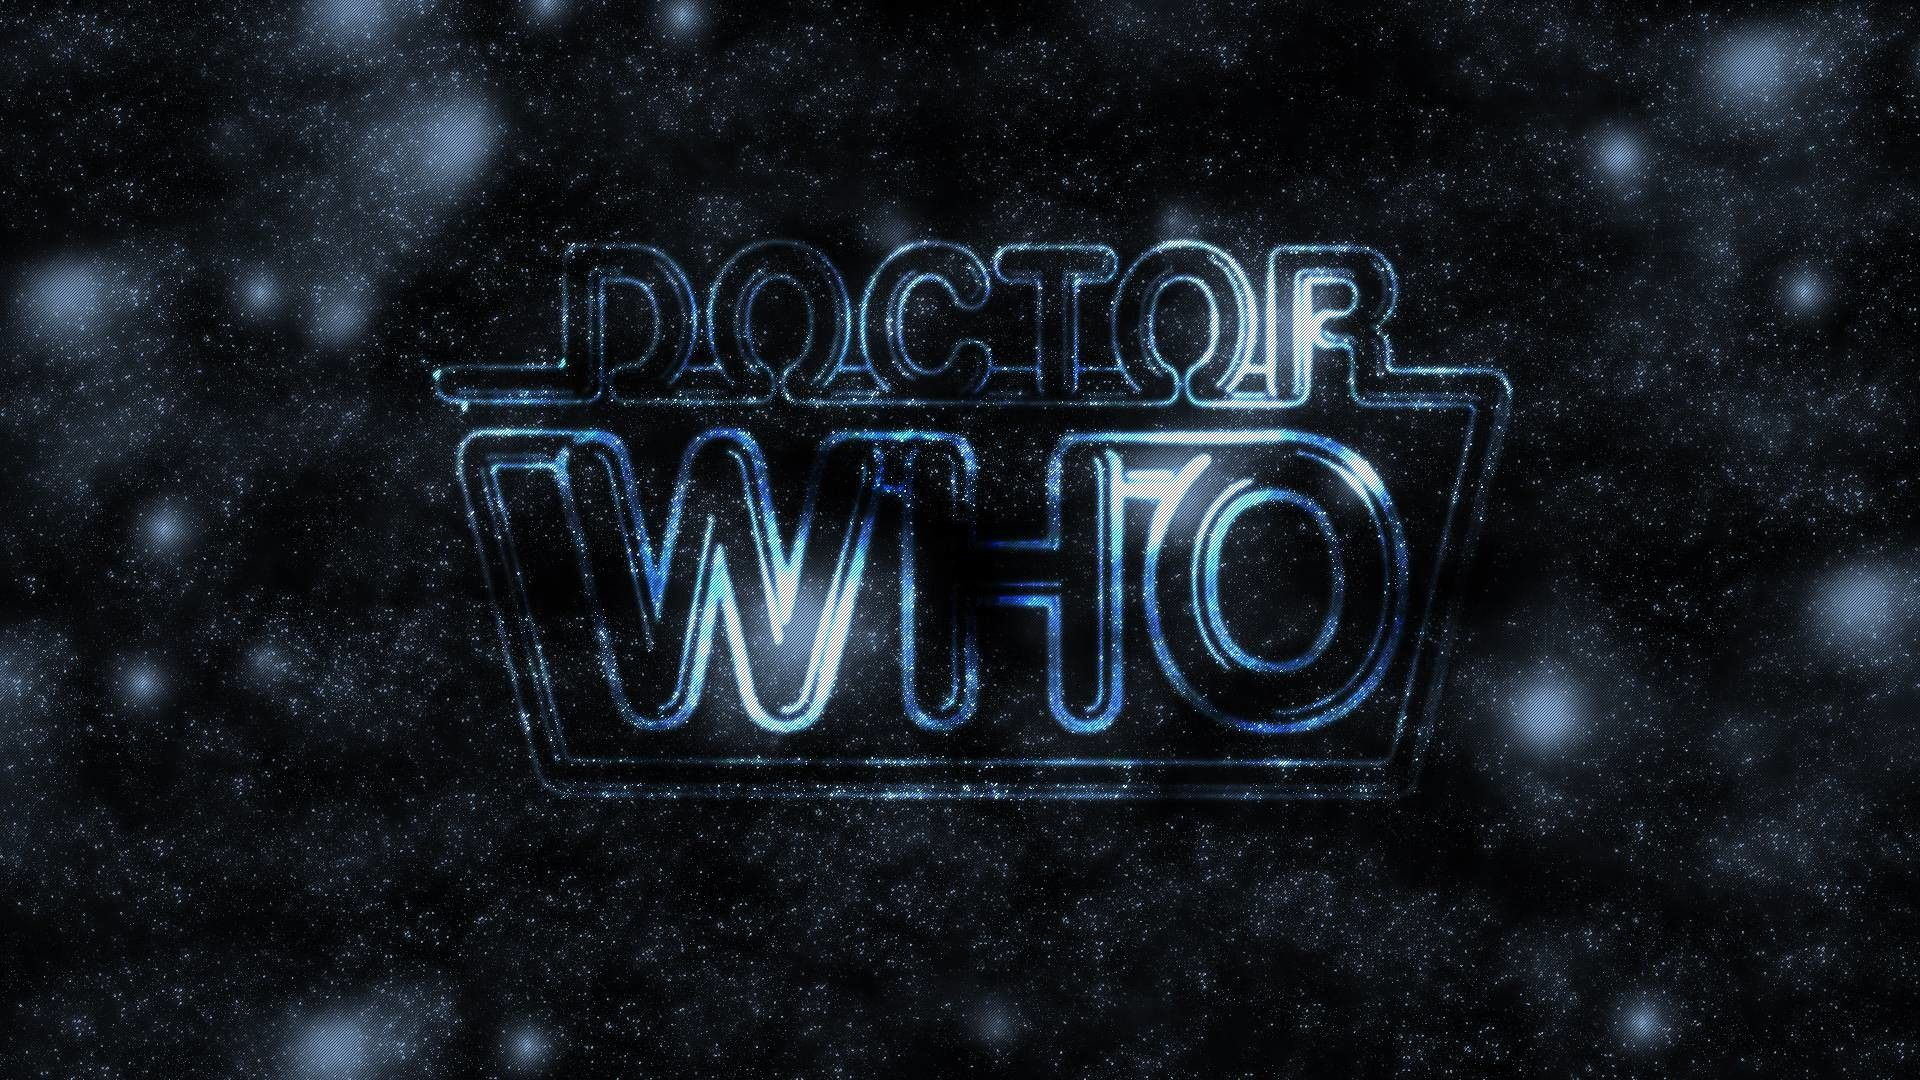 dr who phone wallpaper